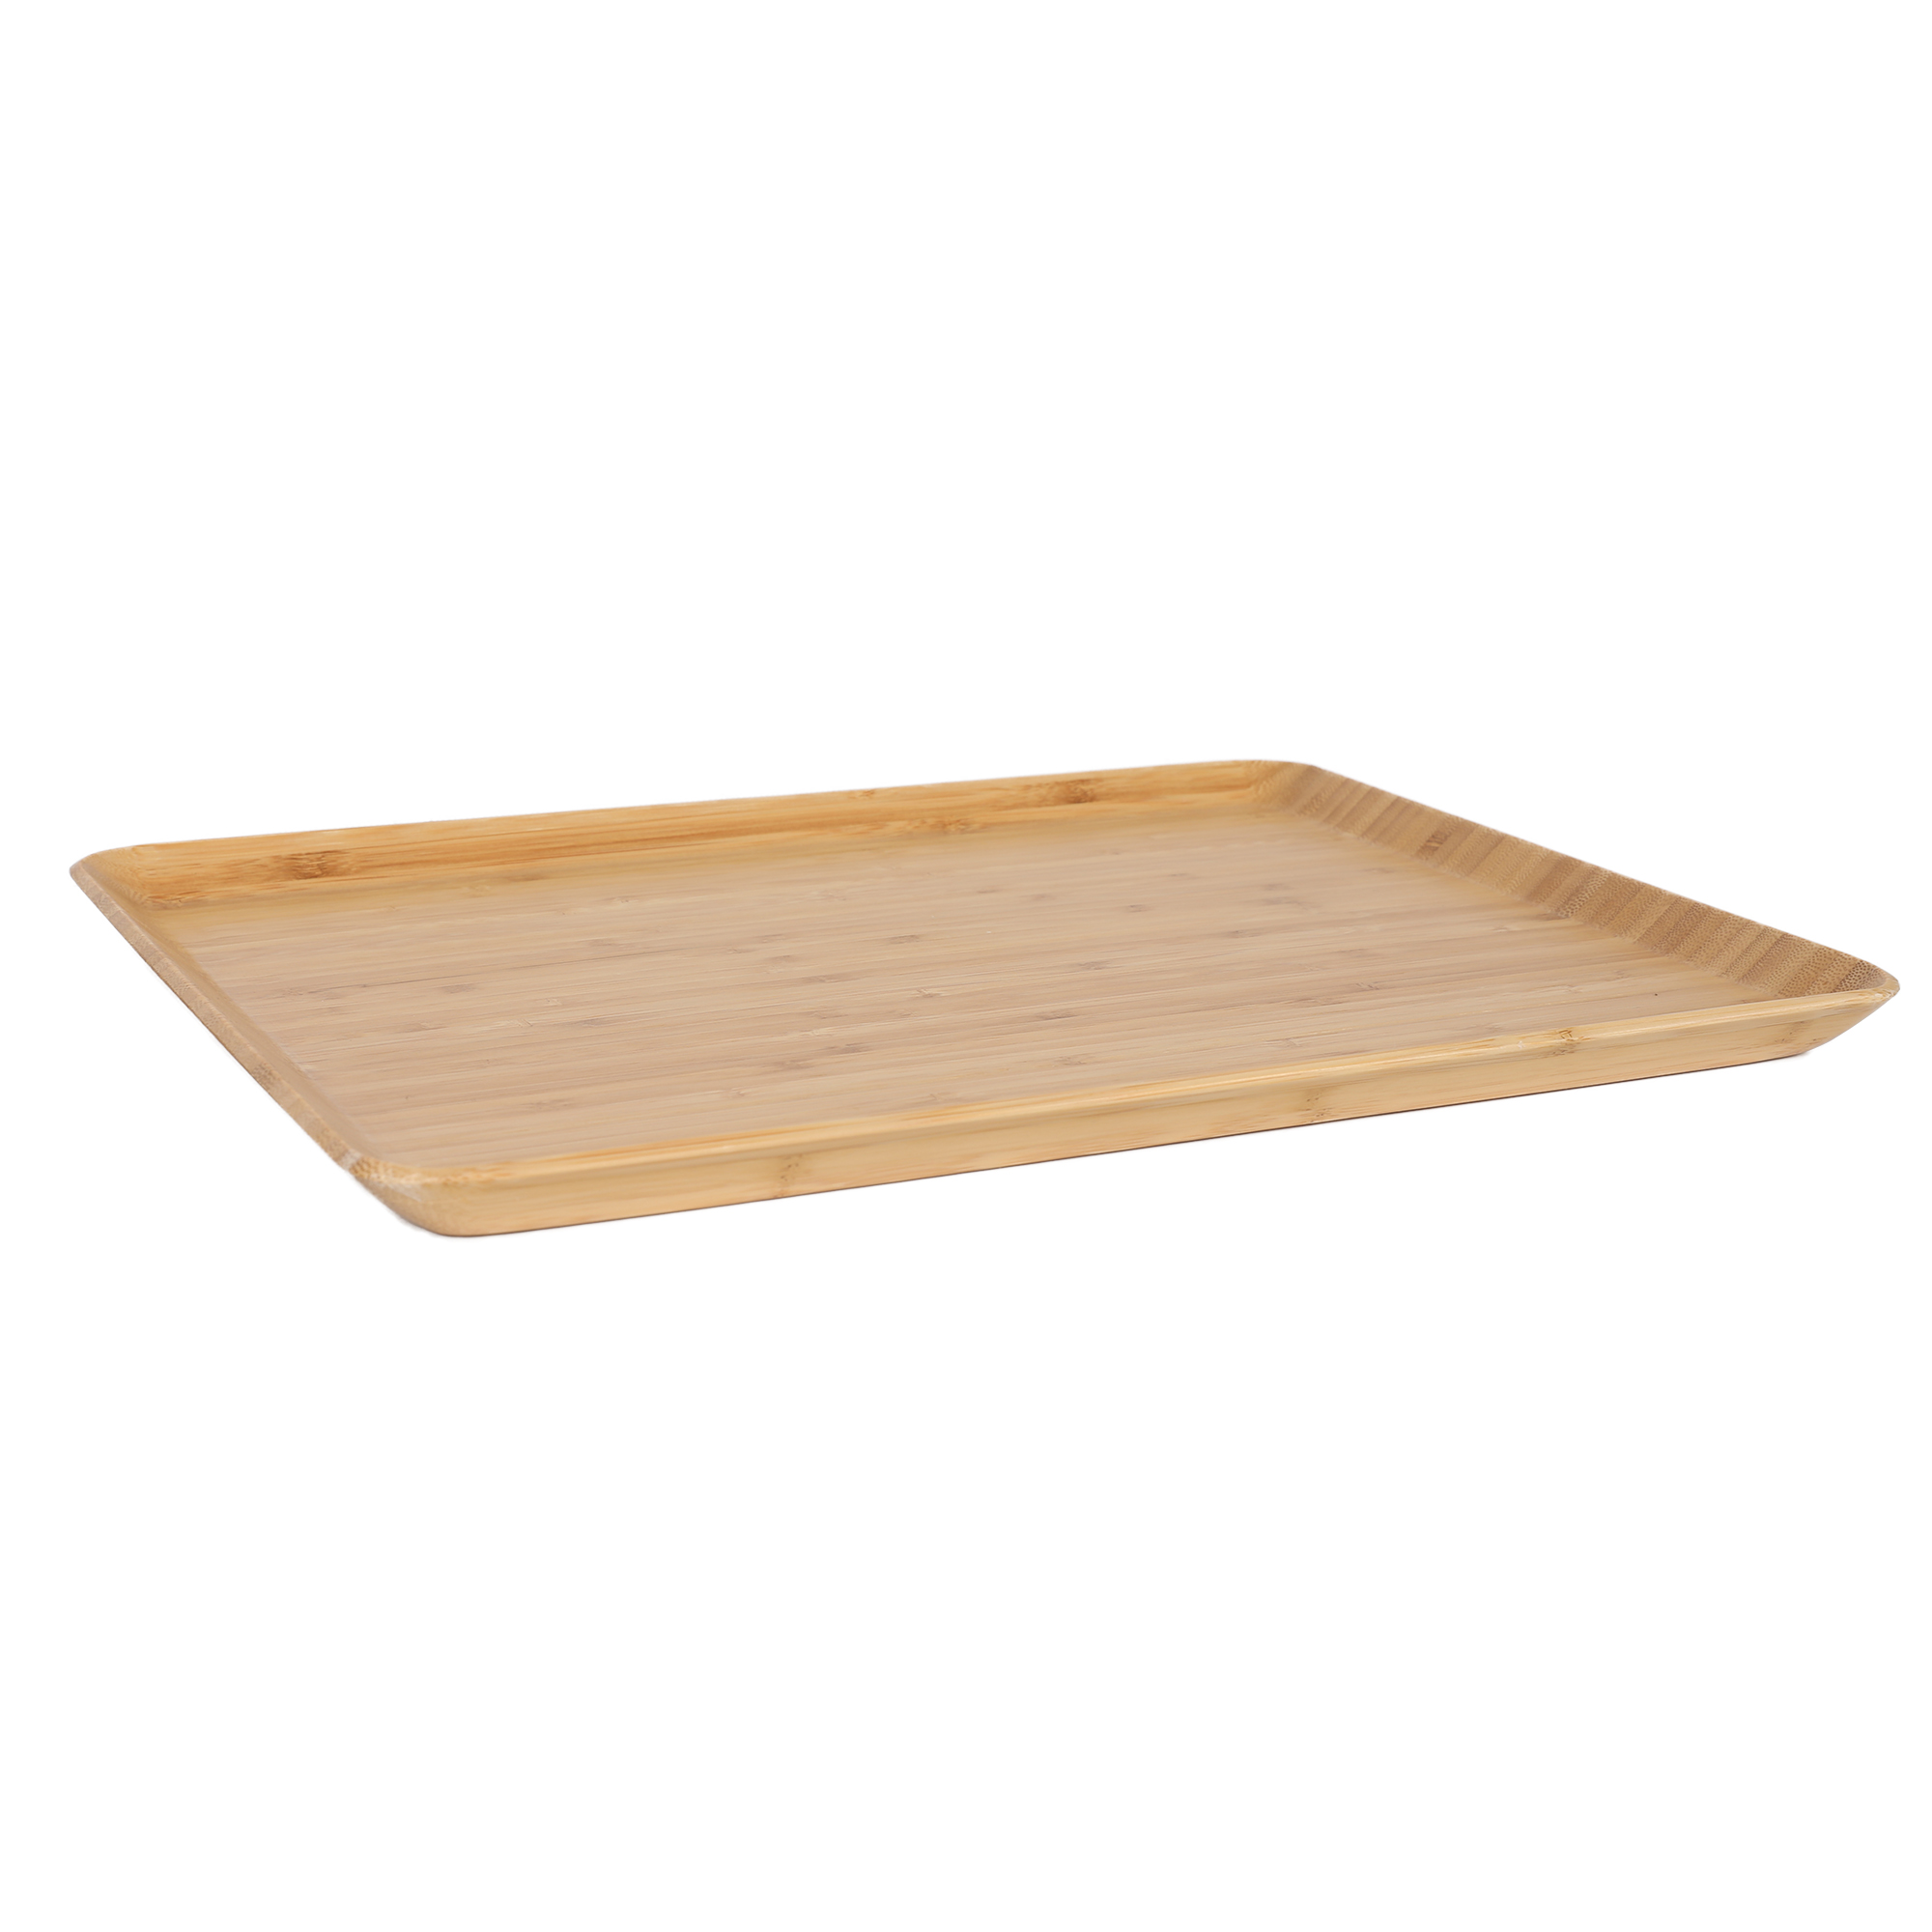 New Design Home Basics Bamboo Cooking Kitchen Utensils Bamboo Tray